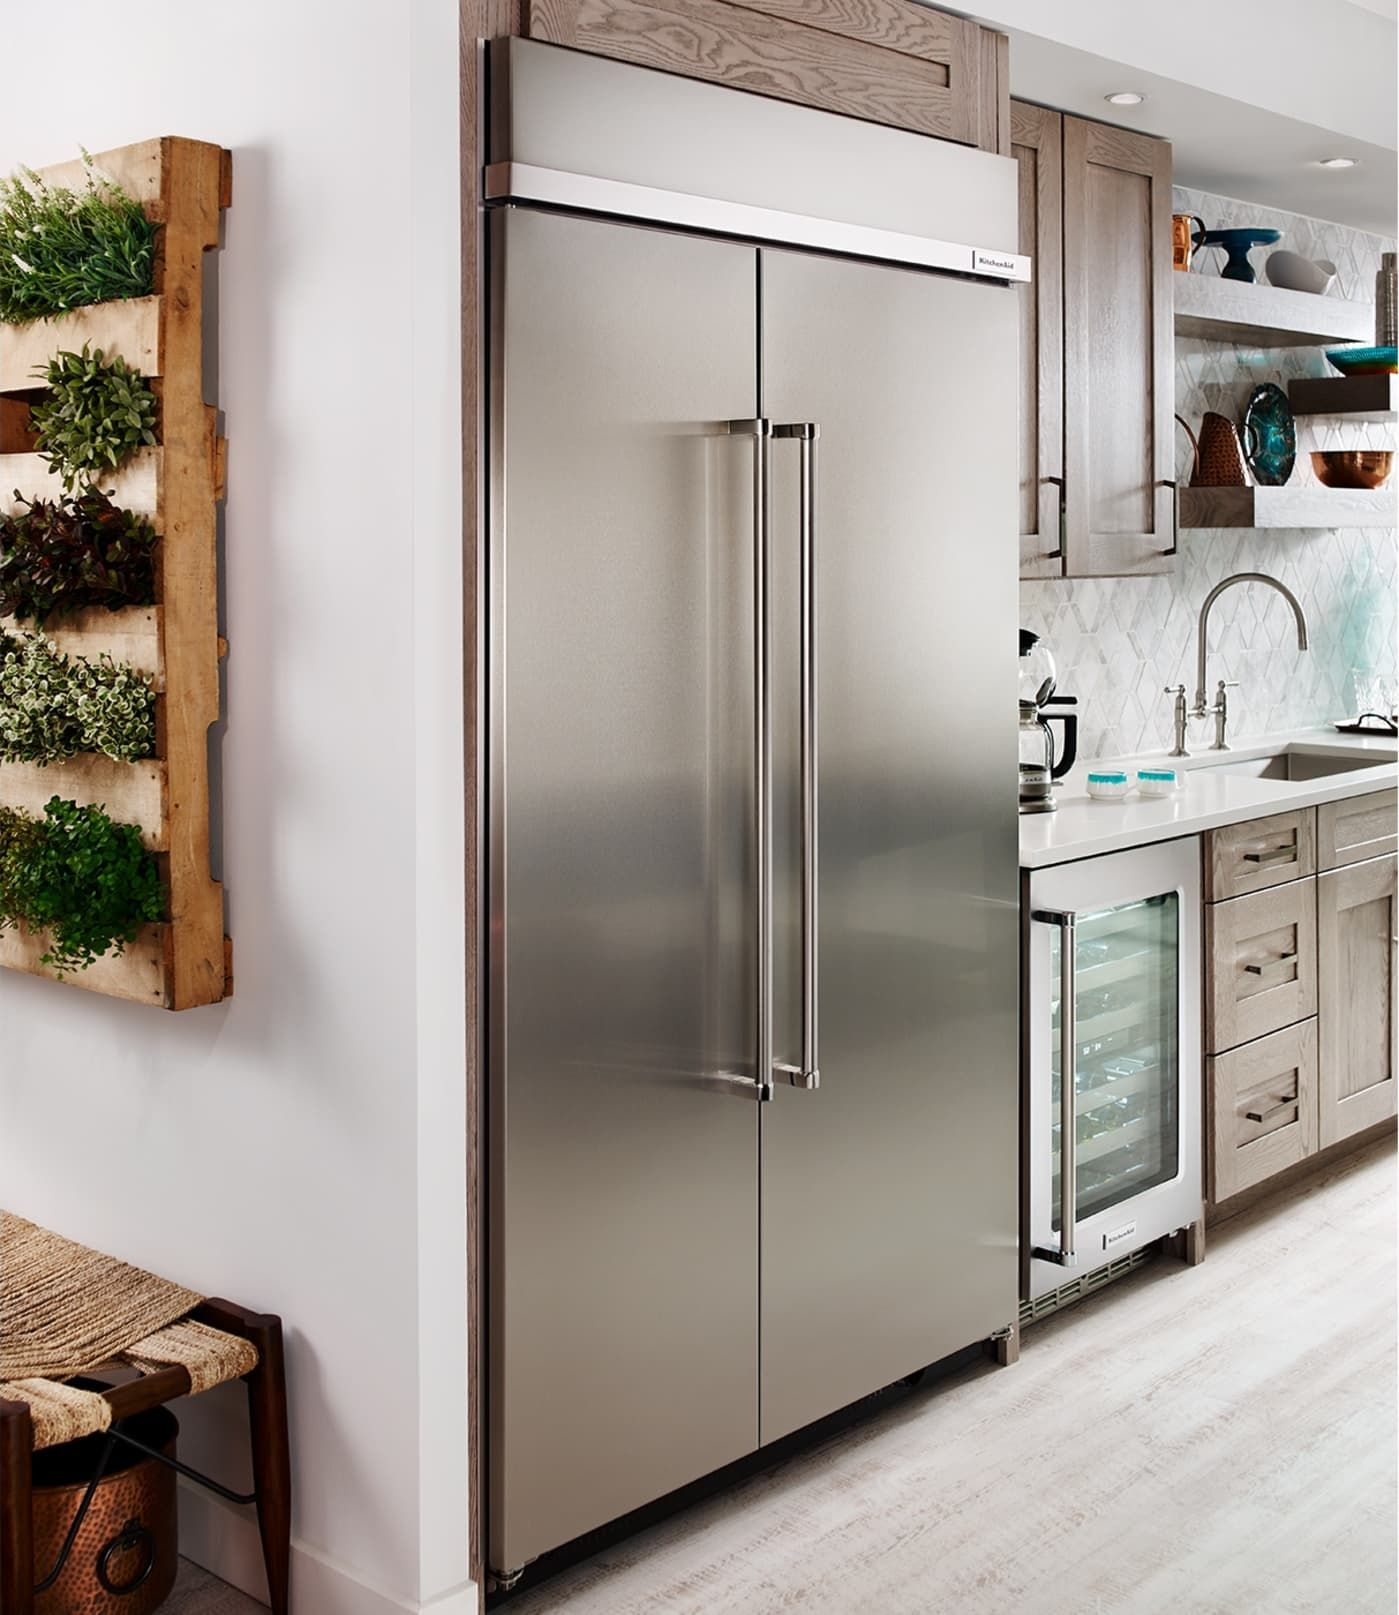 KBSN608ESS by KitchenAid - Side-By-Side Refrigerators ...